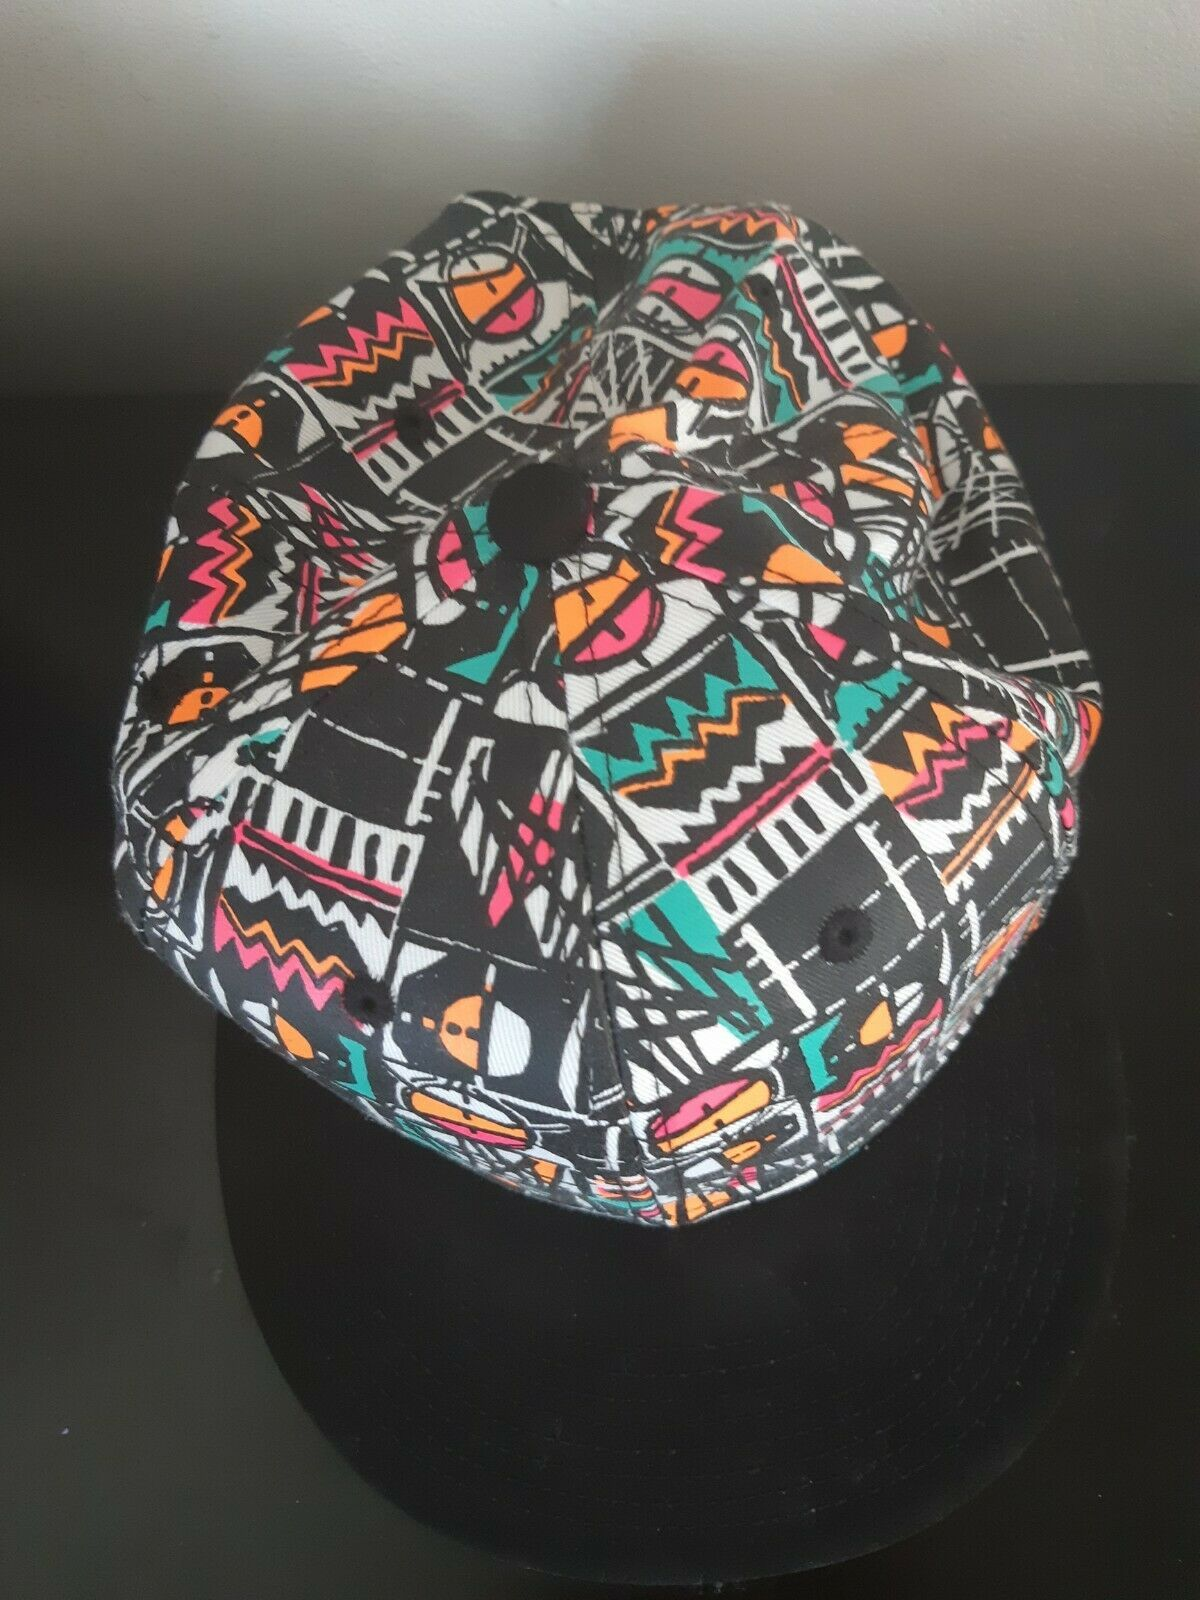 Rare Nike True Air Force One 1 Hat Cap Streetwear Hip Hop One Size Fits Most